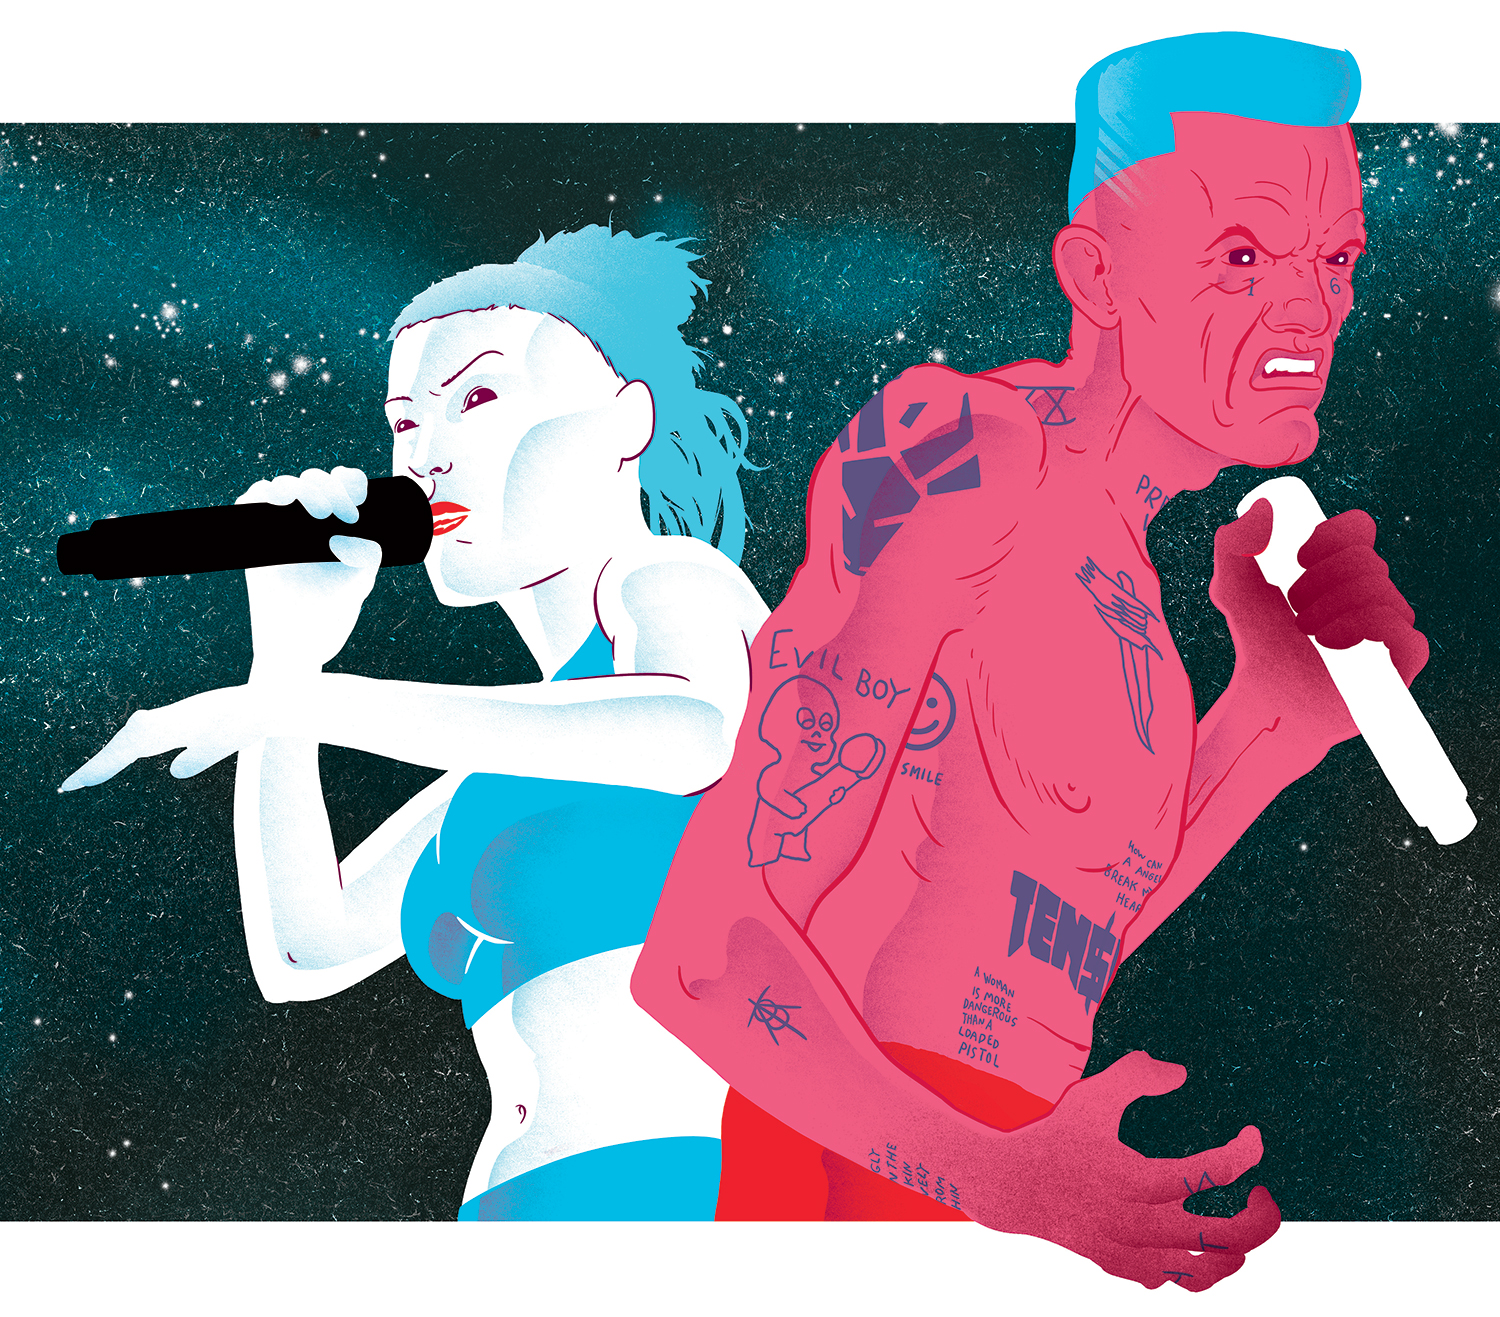 Die Antwoord for Exclaim! magazine